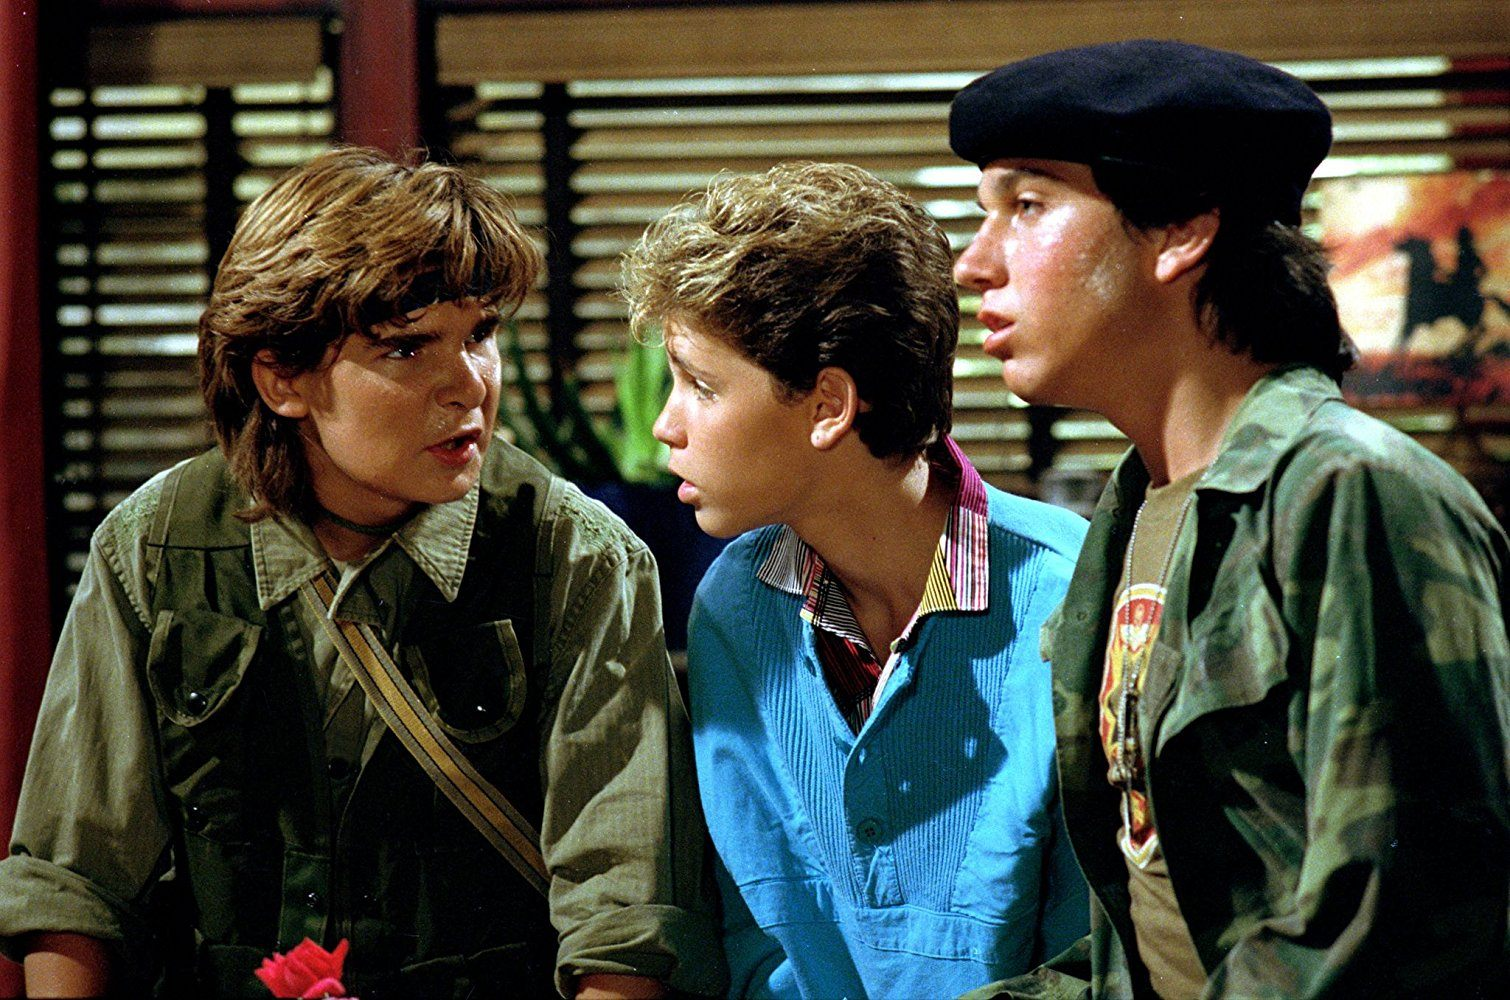 Corey Feldman, Corey Haim, and Jamison Newlander in The Lost Boys